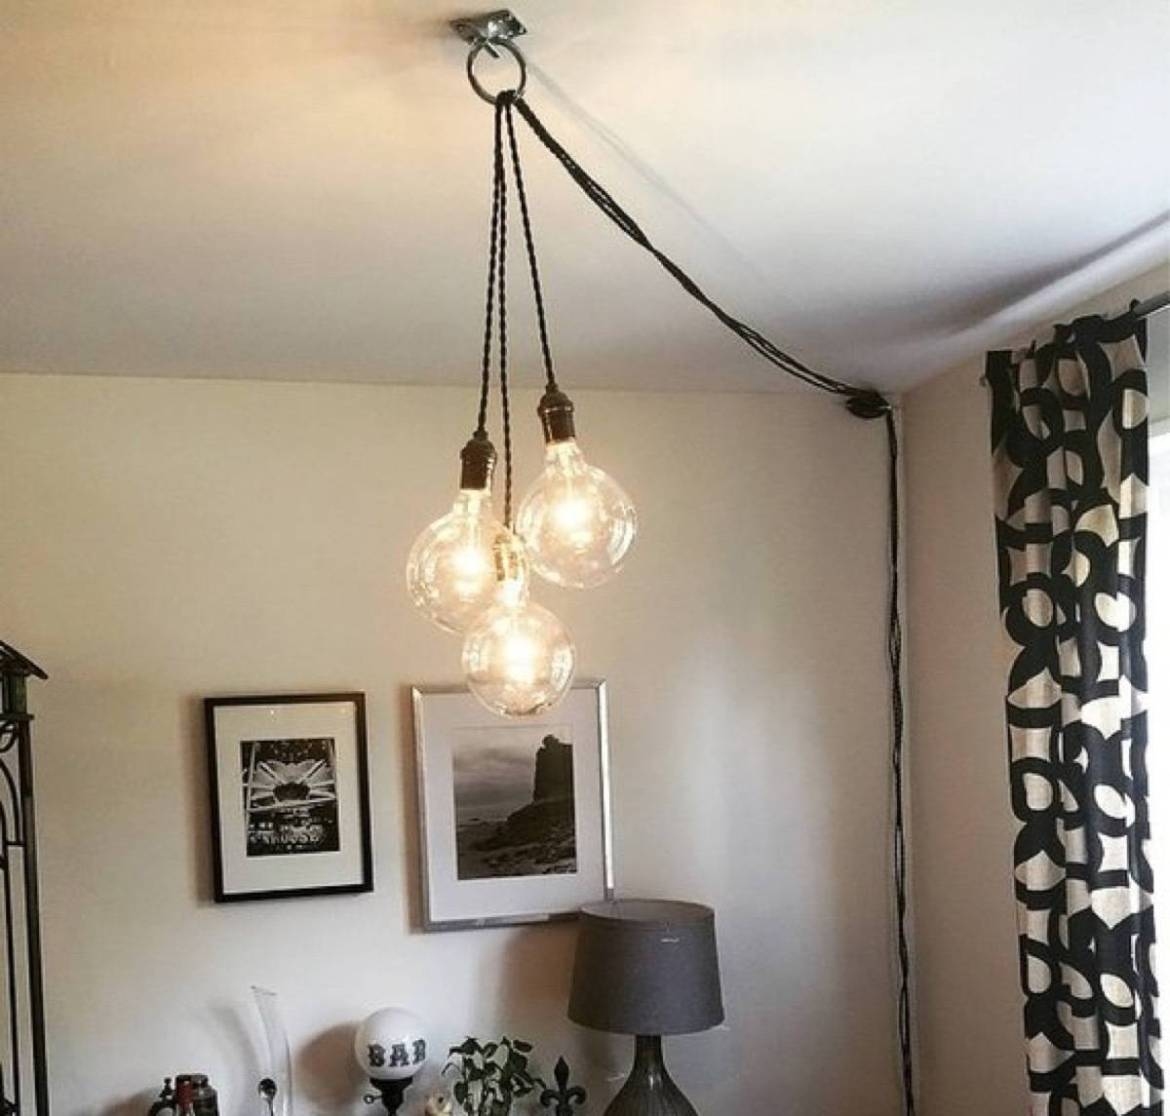 Group of hanging lights that plug directly into wall